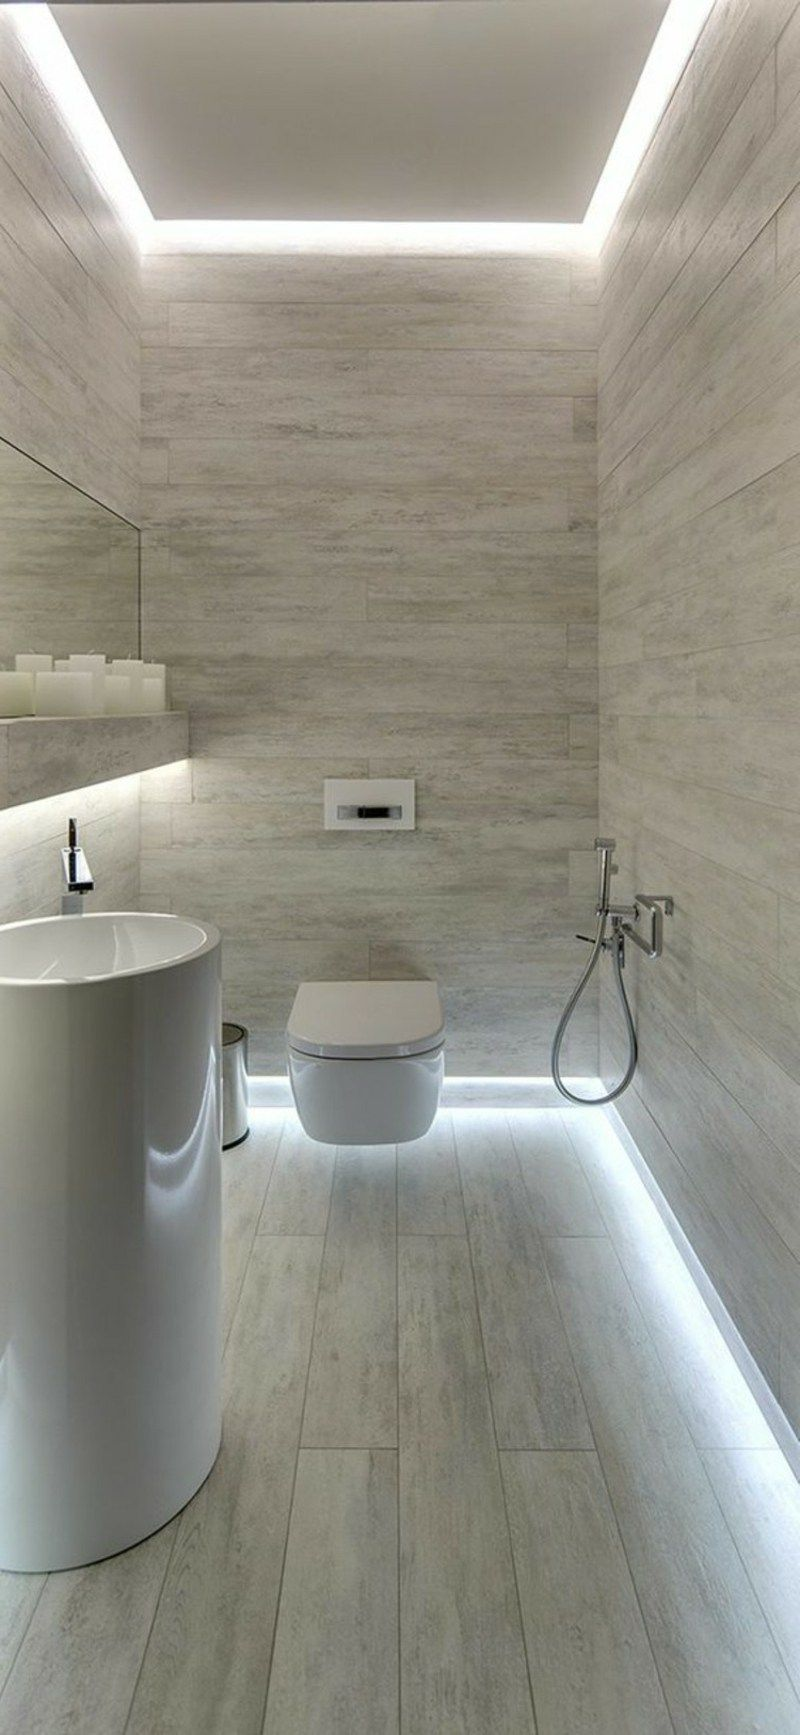 Modish Bathroom Lighting Ideas With Modern Concept: Indirekte Beleuchtung Led